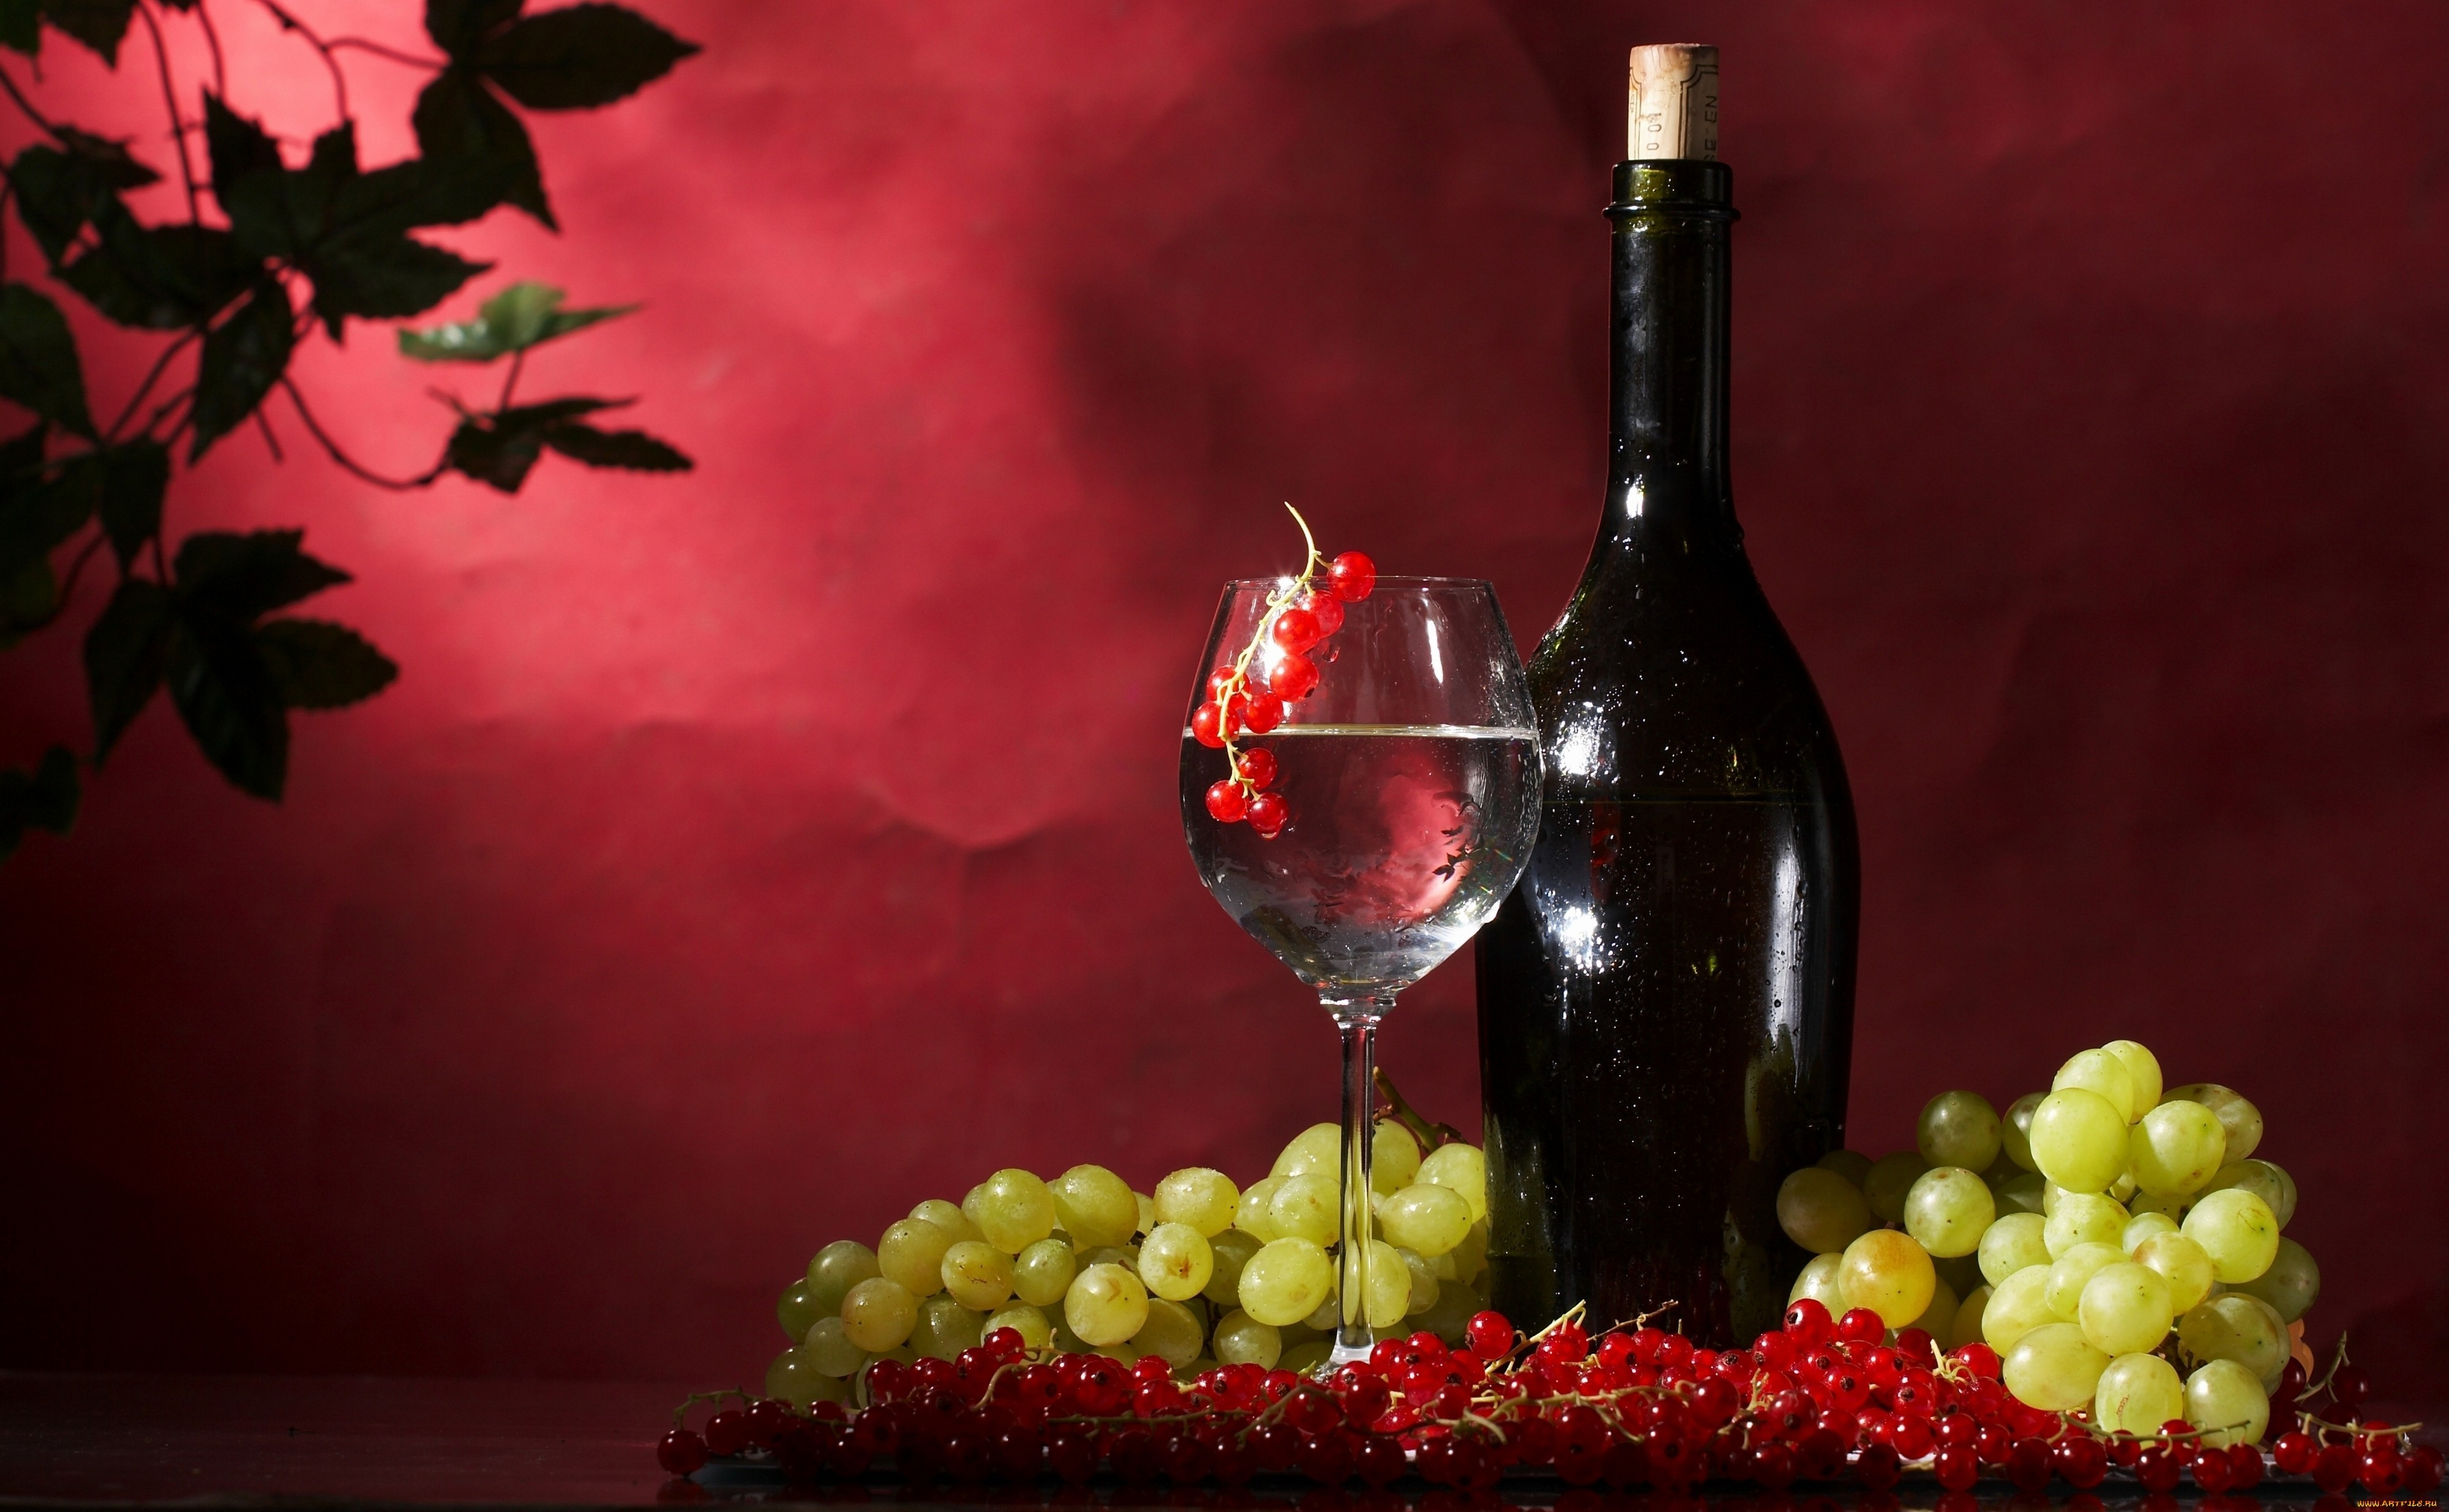 grapes wine hd wallpapers - photo #7